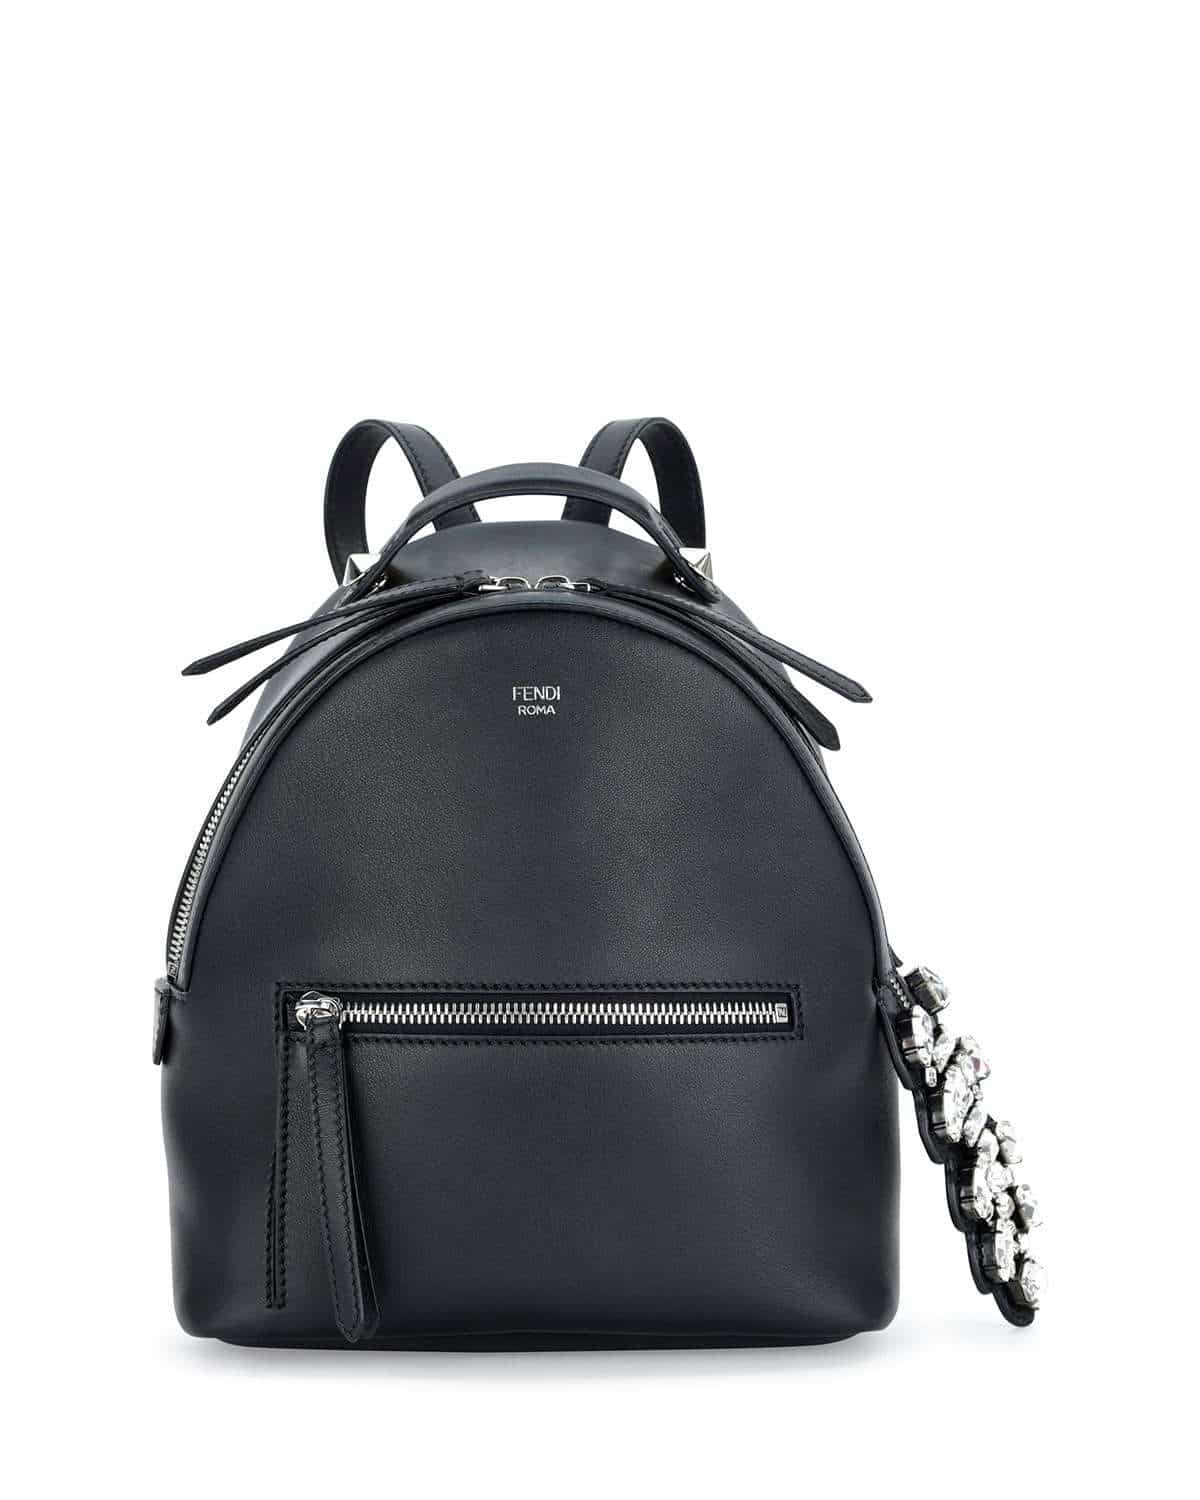 Backpack Fendi Price